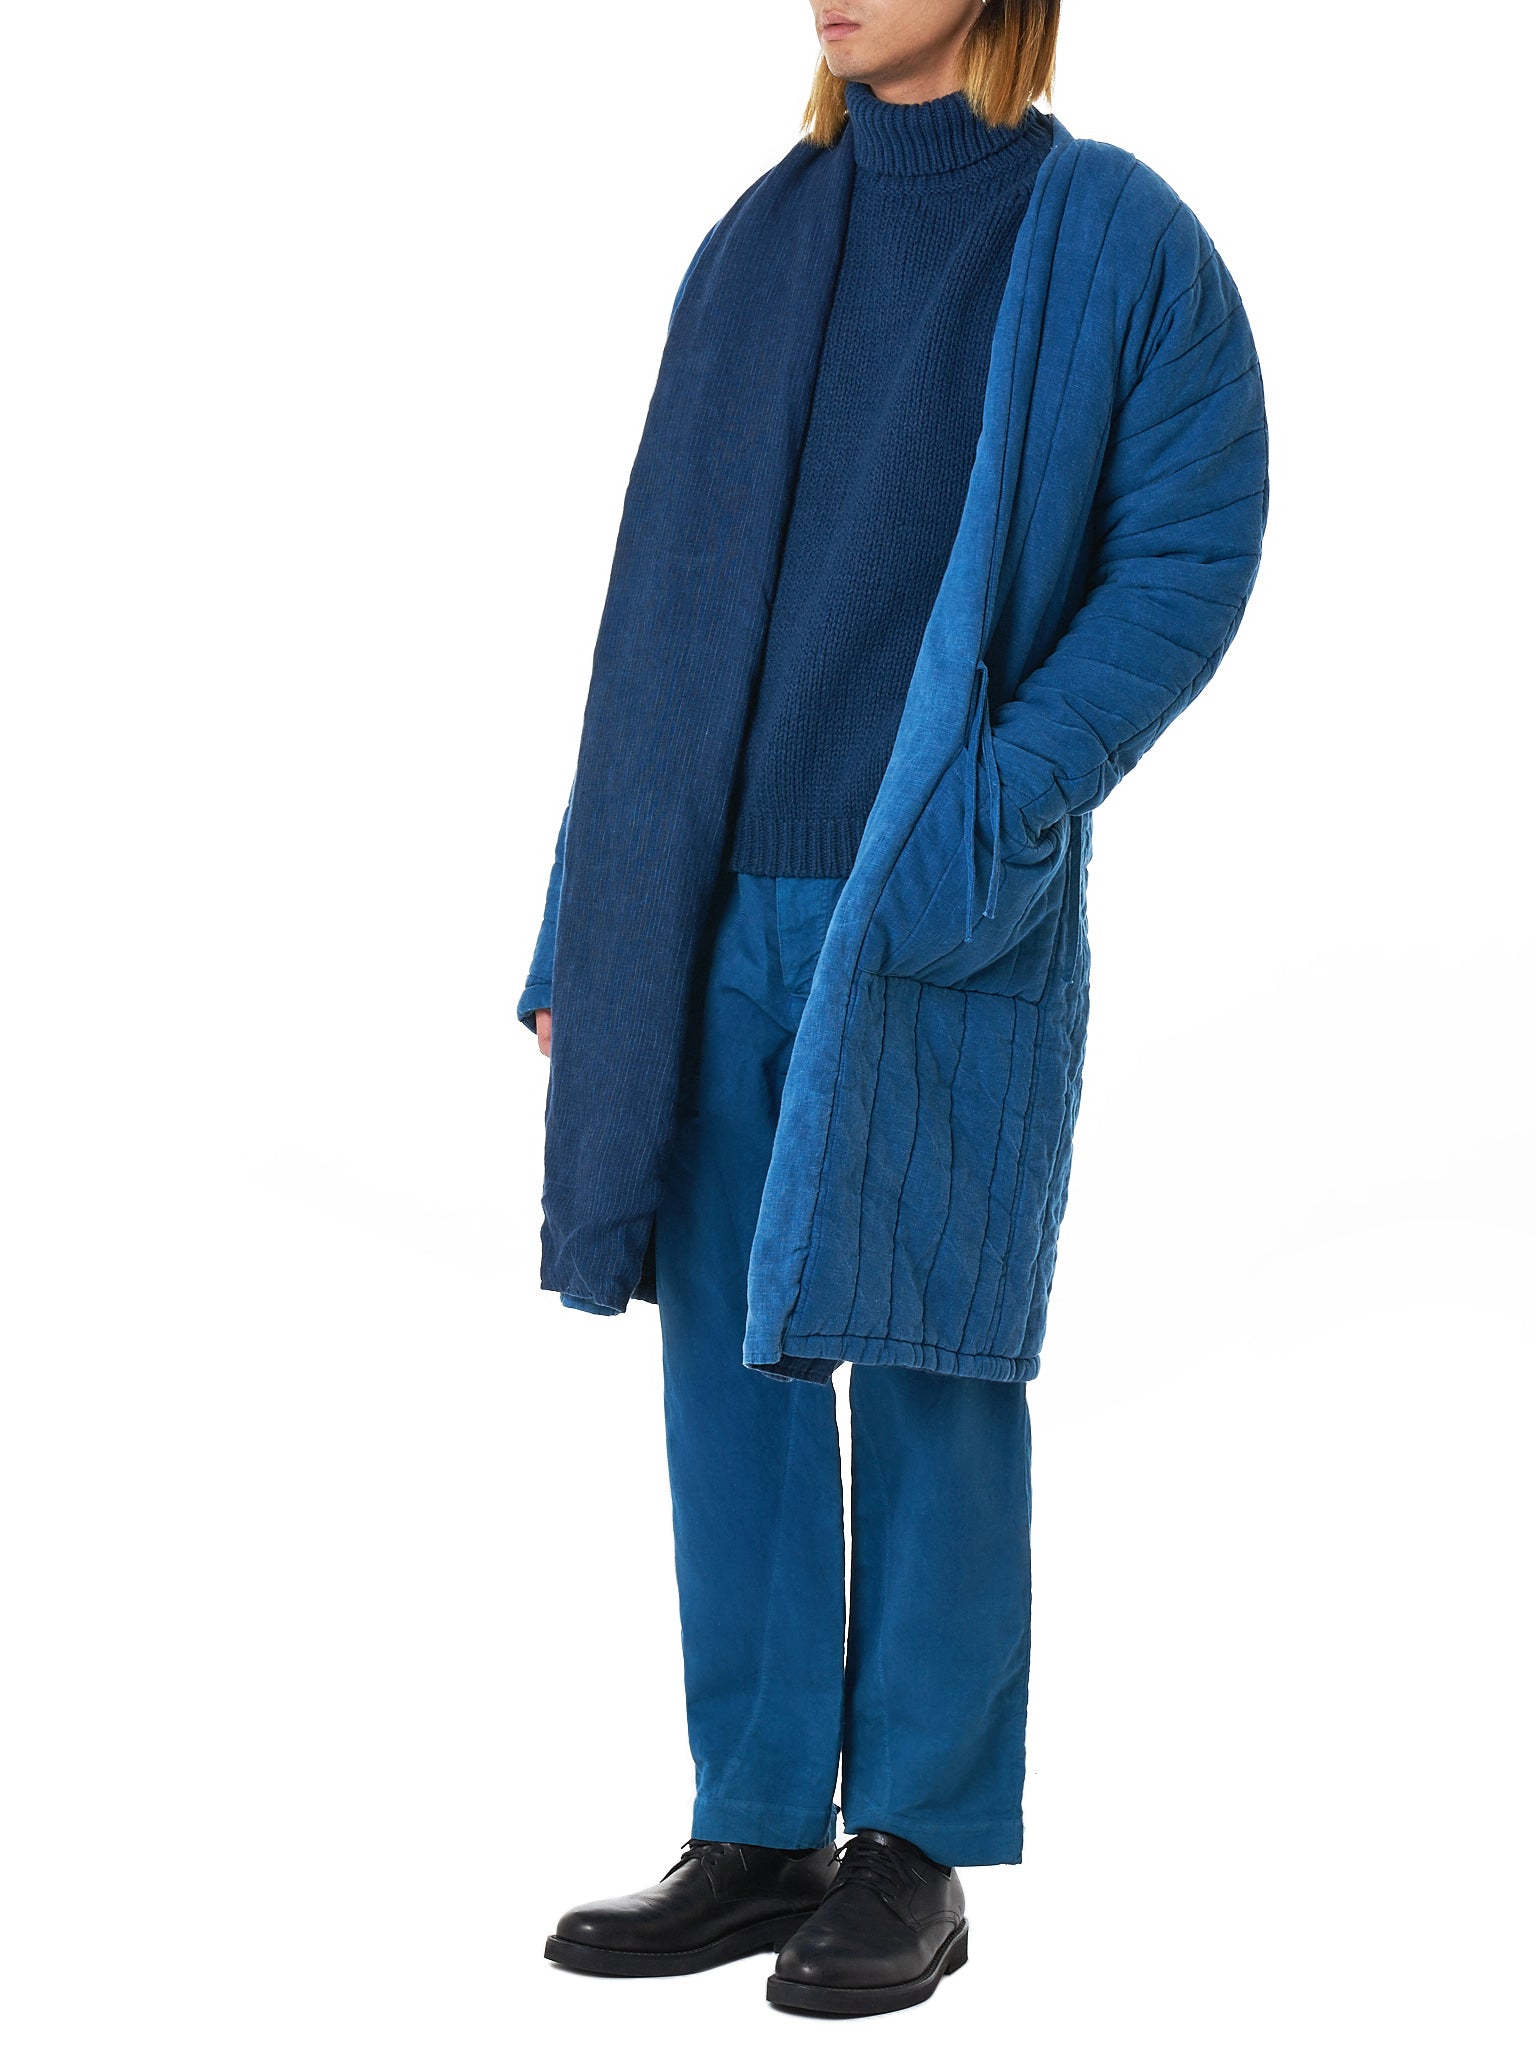 Bleu de Cocagne Turtleneck Sweater - Hlorenzo Style